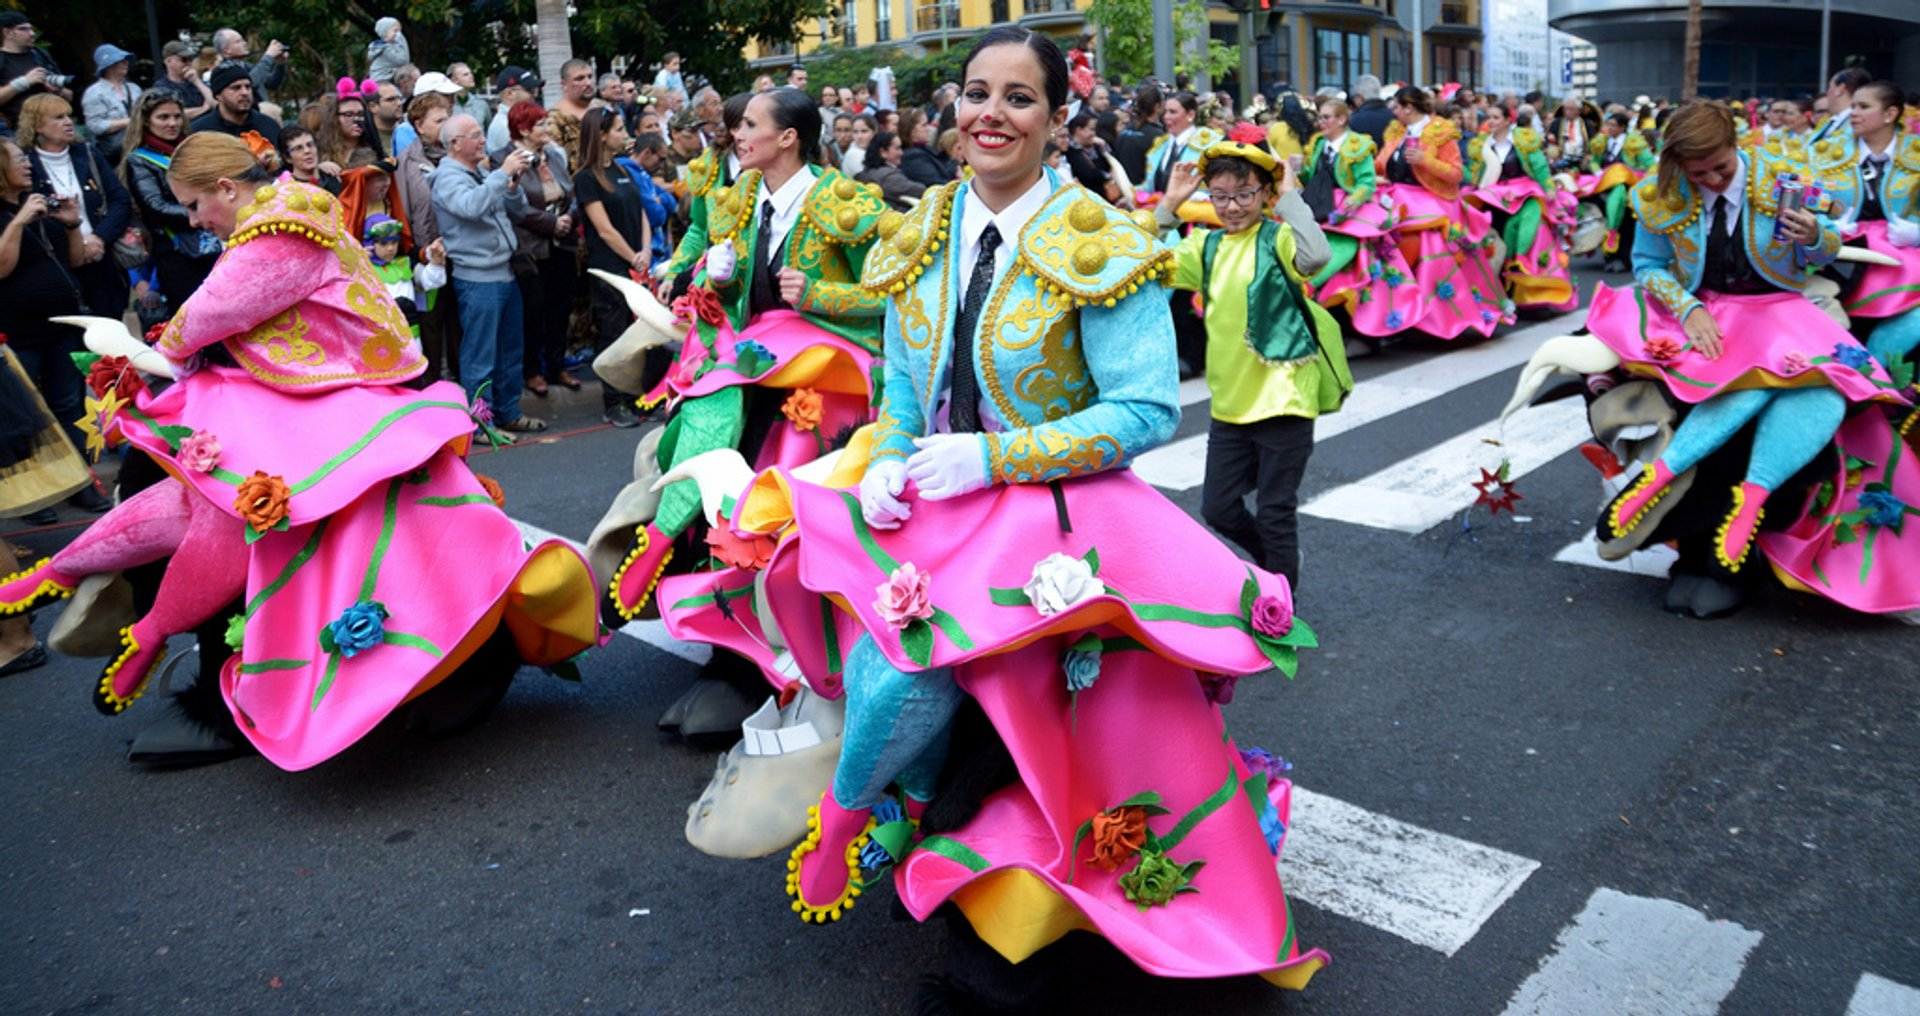 Best time for Las Palmas de Gran Canaria Carnival in Canary Islands 2019